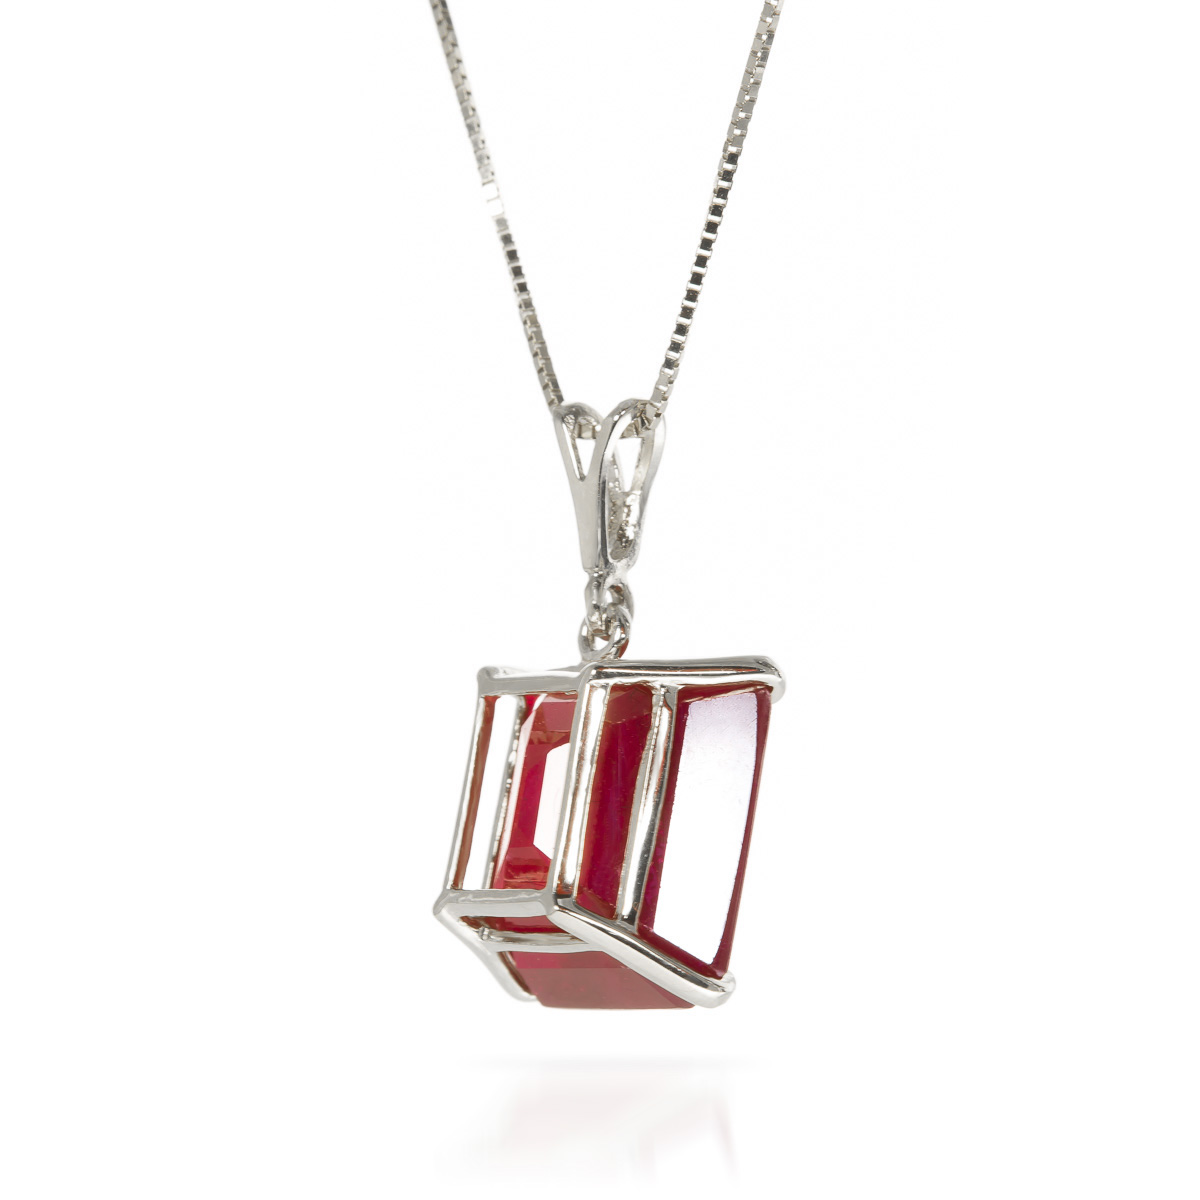 Ruby Pendant Necklace 6.5ct in 14K White Gold